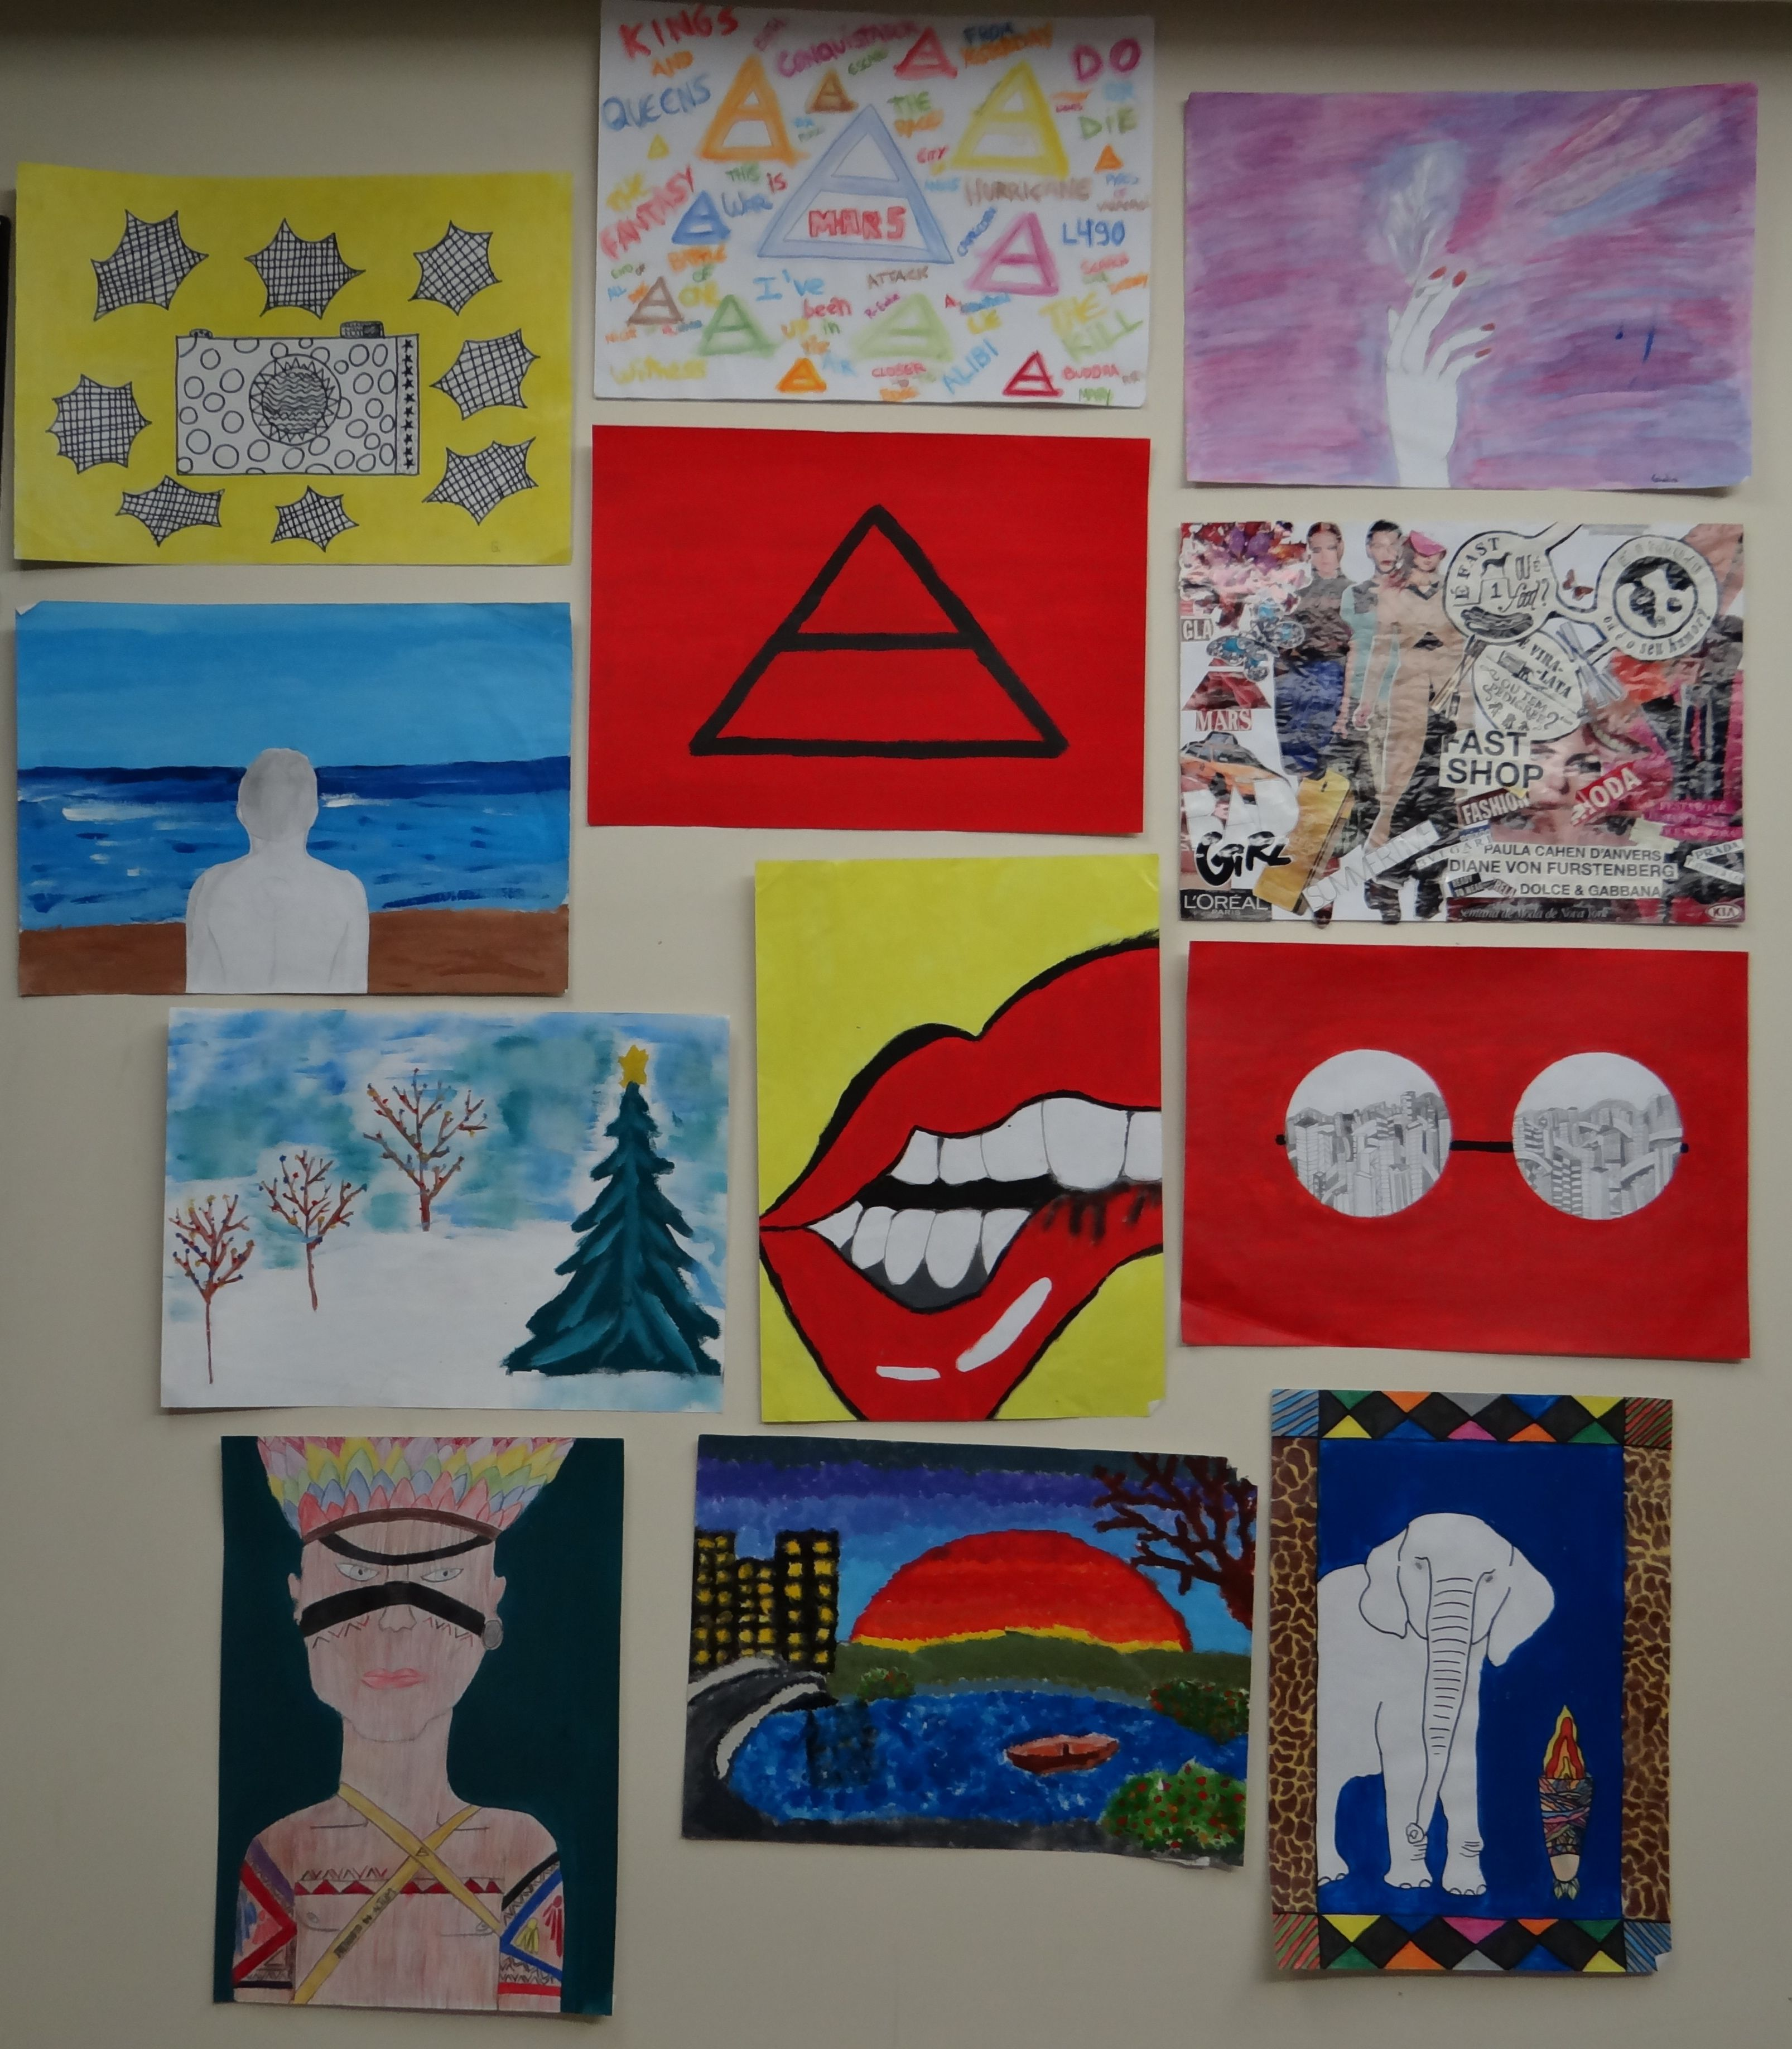 I made those paintings when I was at elementary school. I am a completely passionate about art. Art is everything to me. Art is an essential for living. I can see art in every single thing. Art is expression. Art is soul. It is something that transcends all boundaries, being in fashion, painting, sculpture, music, literature, photography... at all!